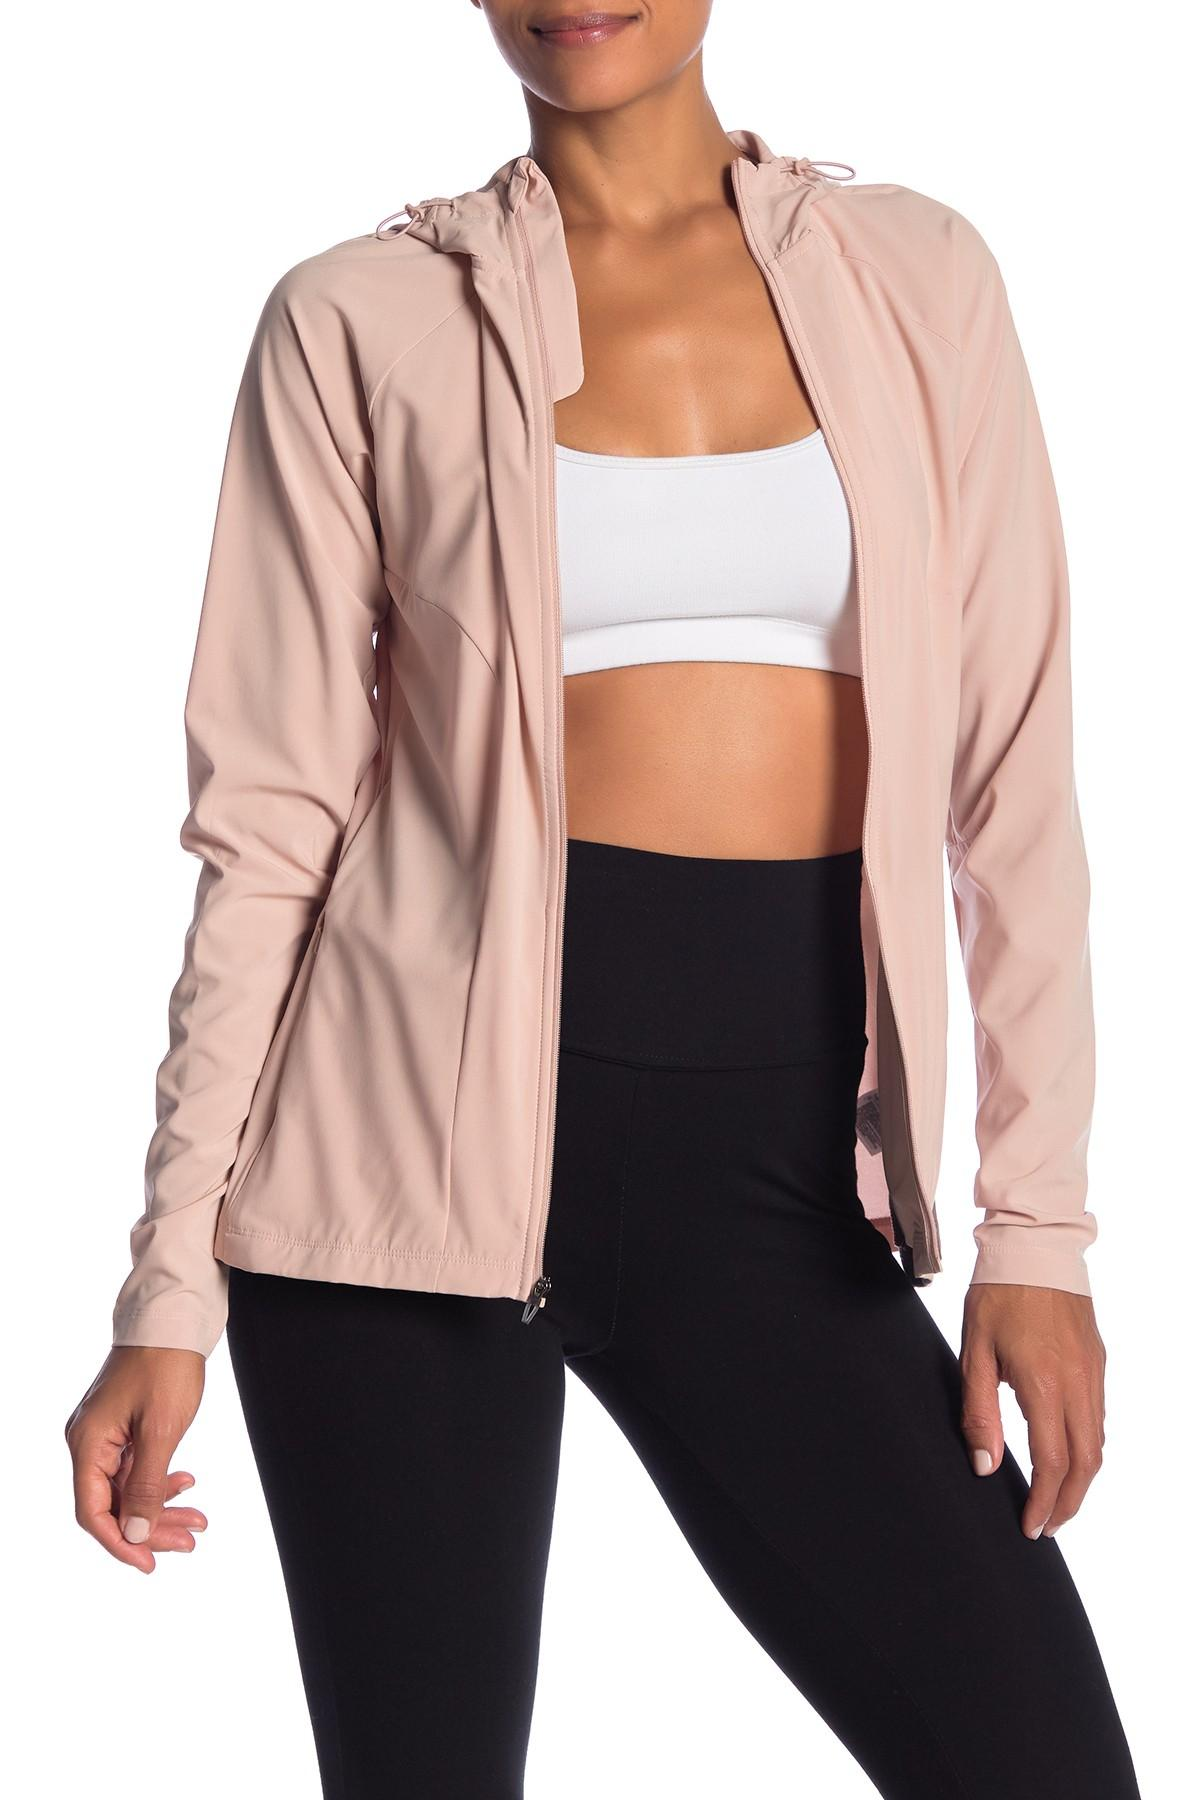 034602d99cfe Lyst - adidas Freelift Woven Jacket in Pink